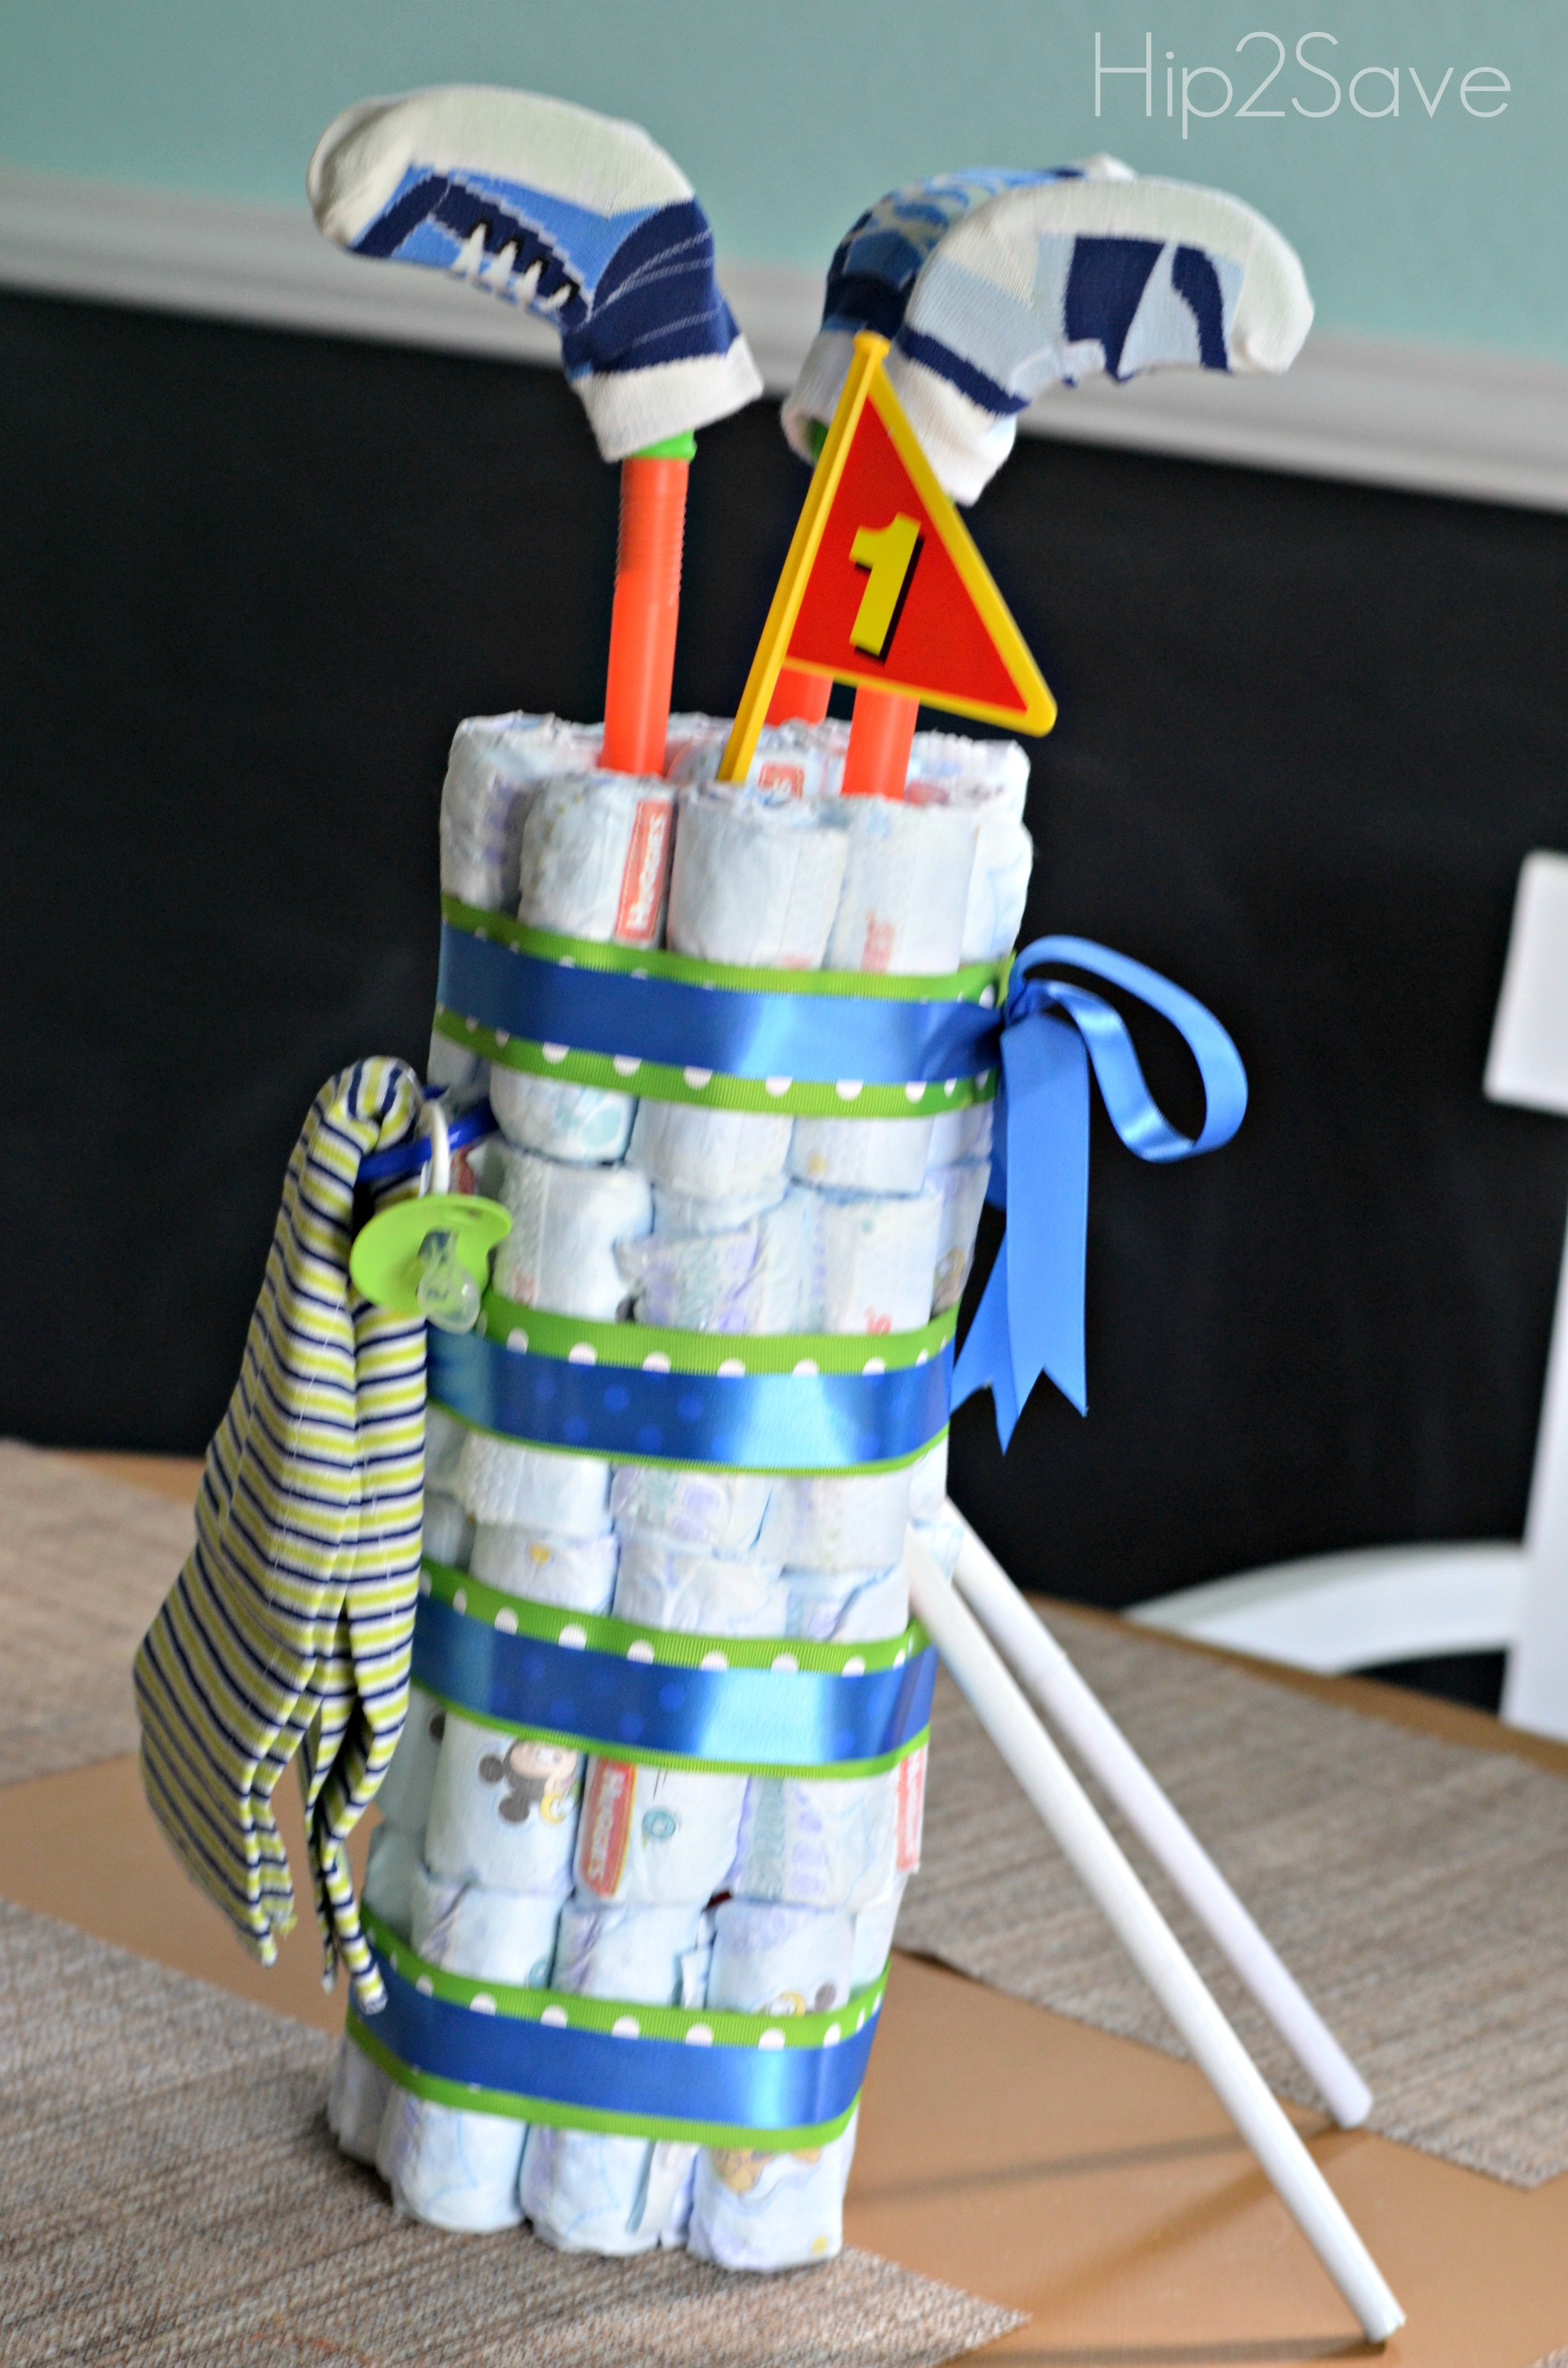 golf bag diaper cake with socks, baby shower ideas, cute baby shower, best baby shower ideas, baby shower cake, fun games for baby shower, baby shower food